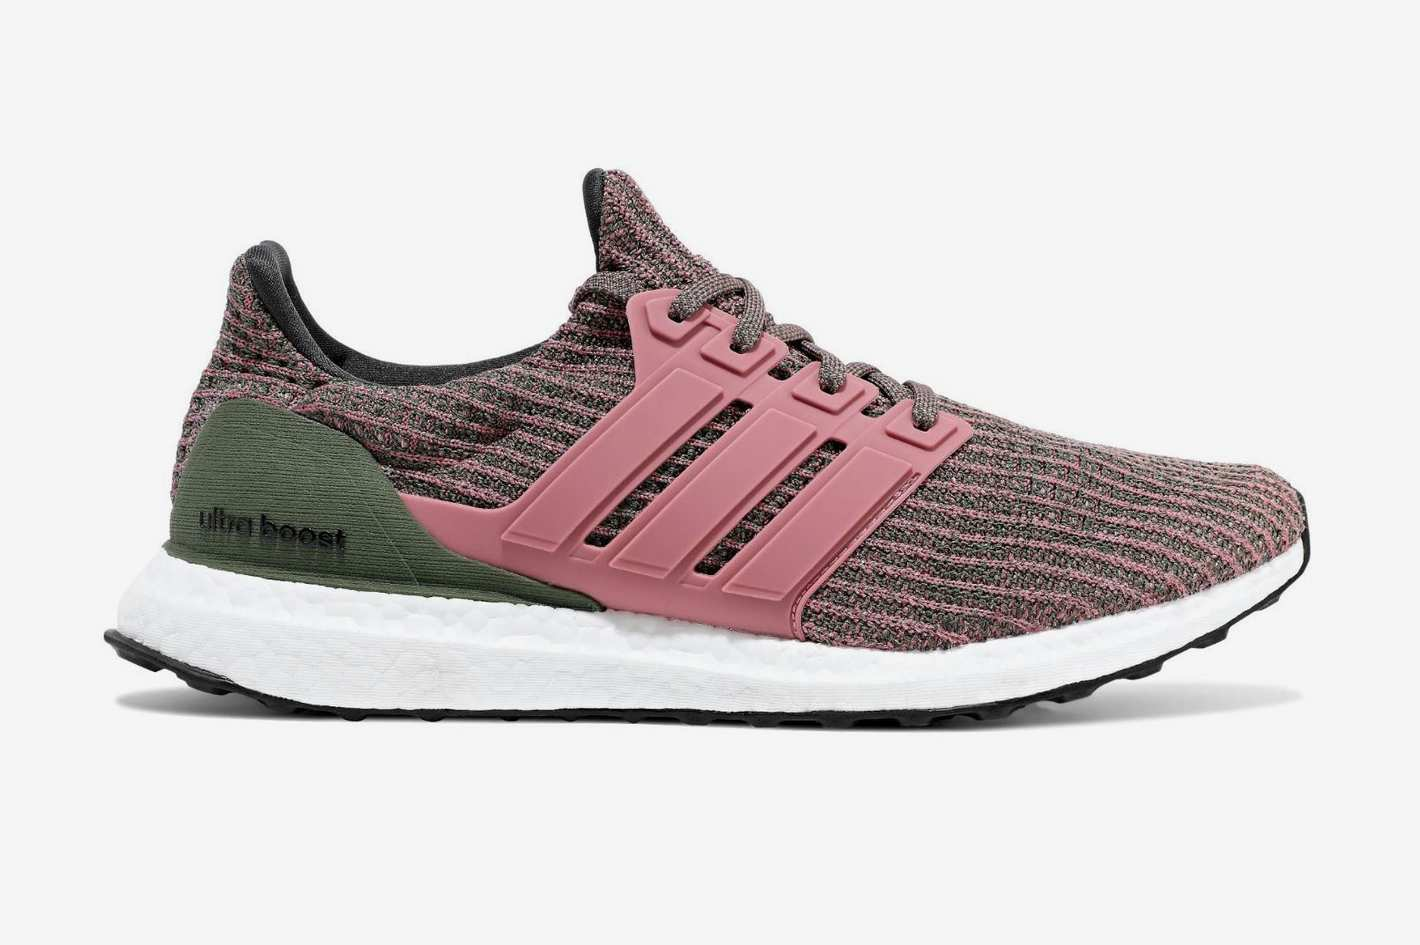 Adidas Ultra Boost Stretch-knit Sneakers